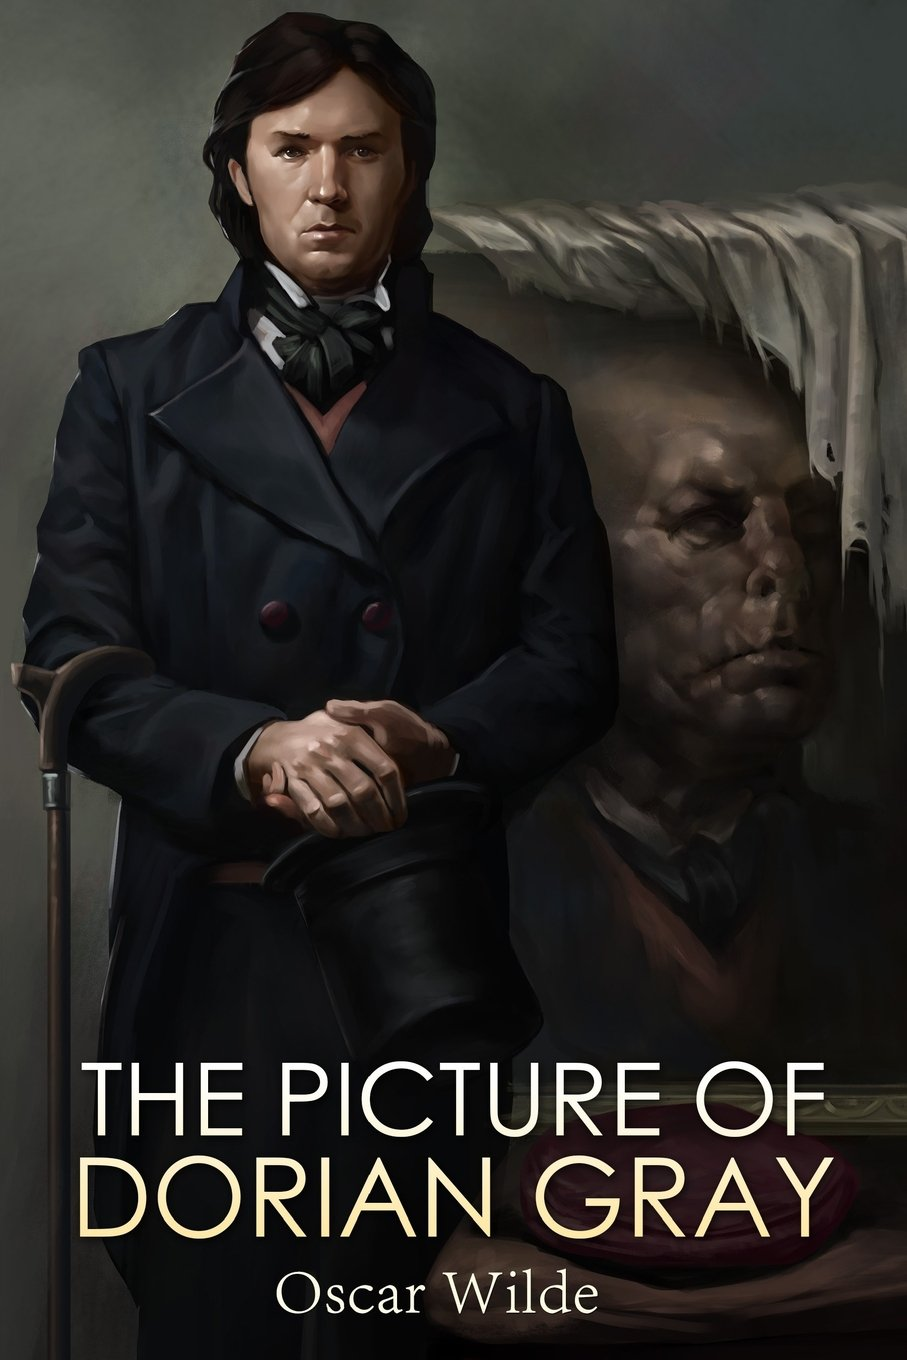 thesis about the picture of dorian gray Free essays from bartleby | abstract in an attempt to find out the purposes of the gothic elements in the picture of dorian gray, this essay takes a close.